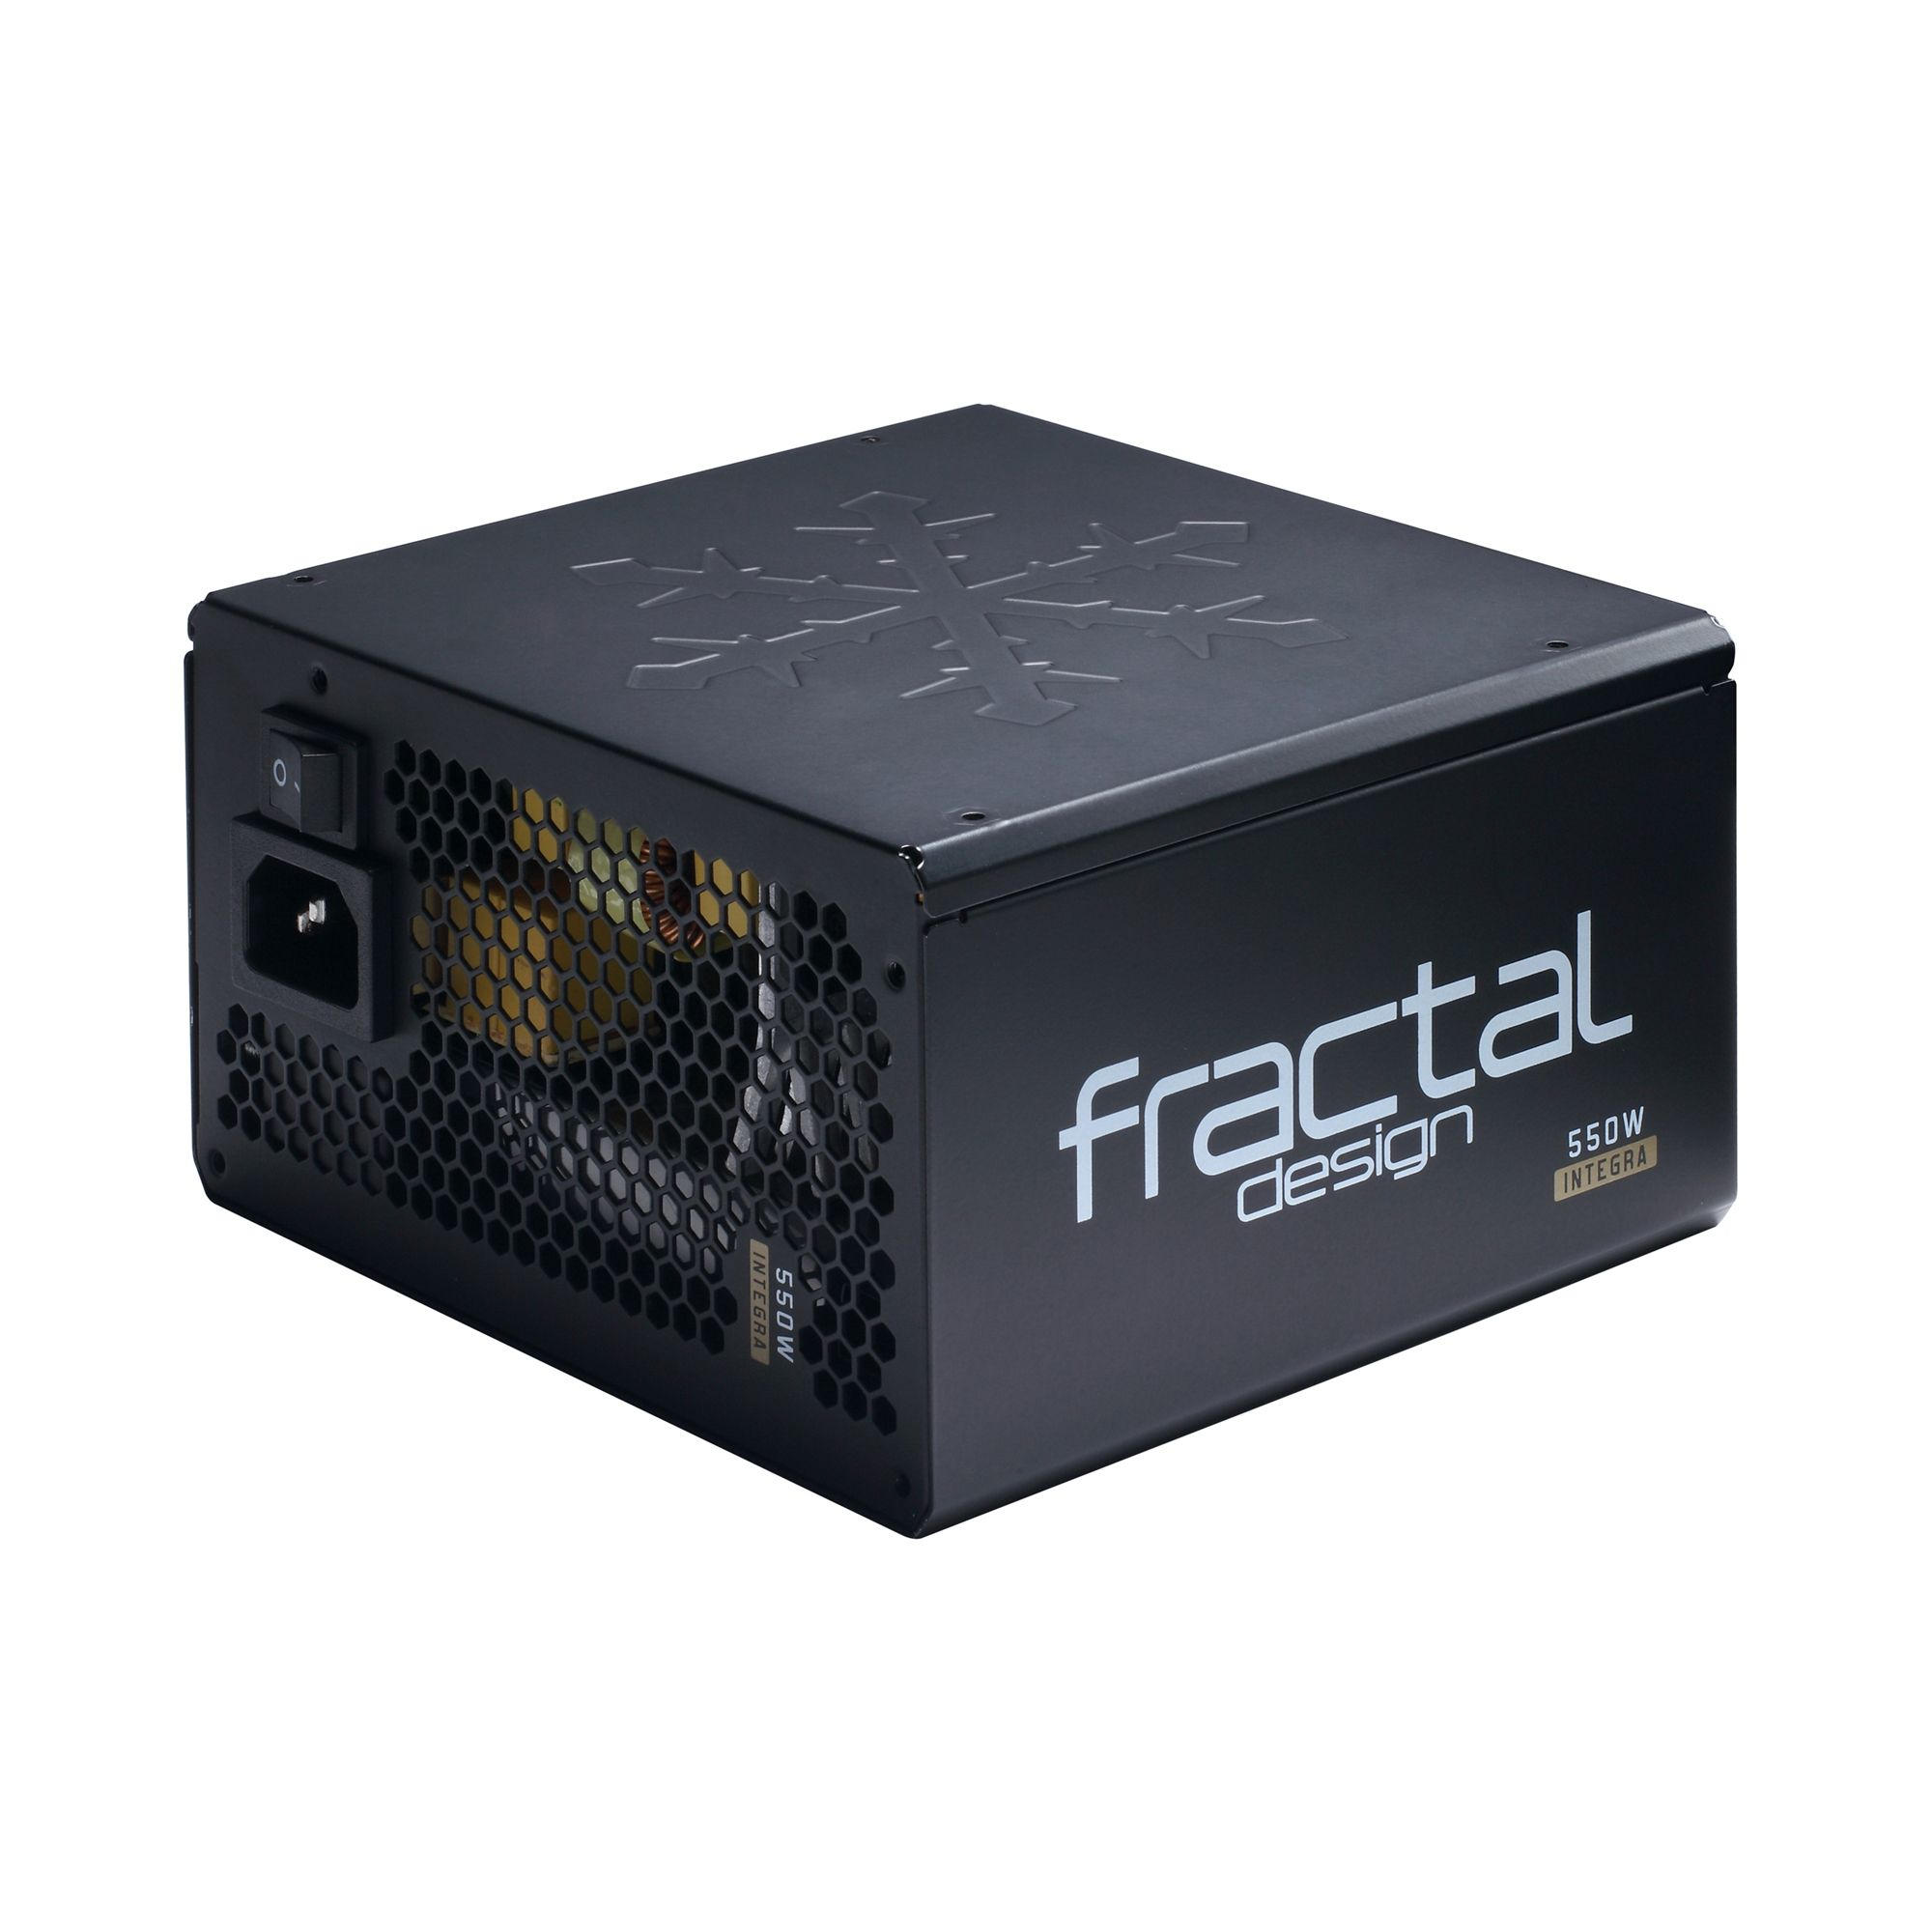 Fractal Design Integra M 550W (FD-PSU-IN3B-550W-EU)